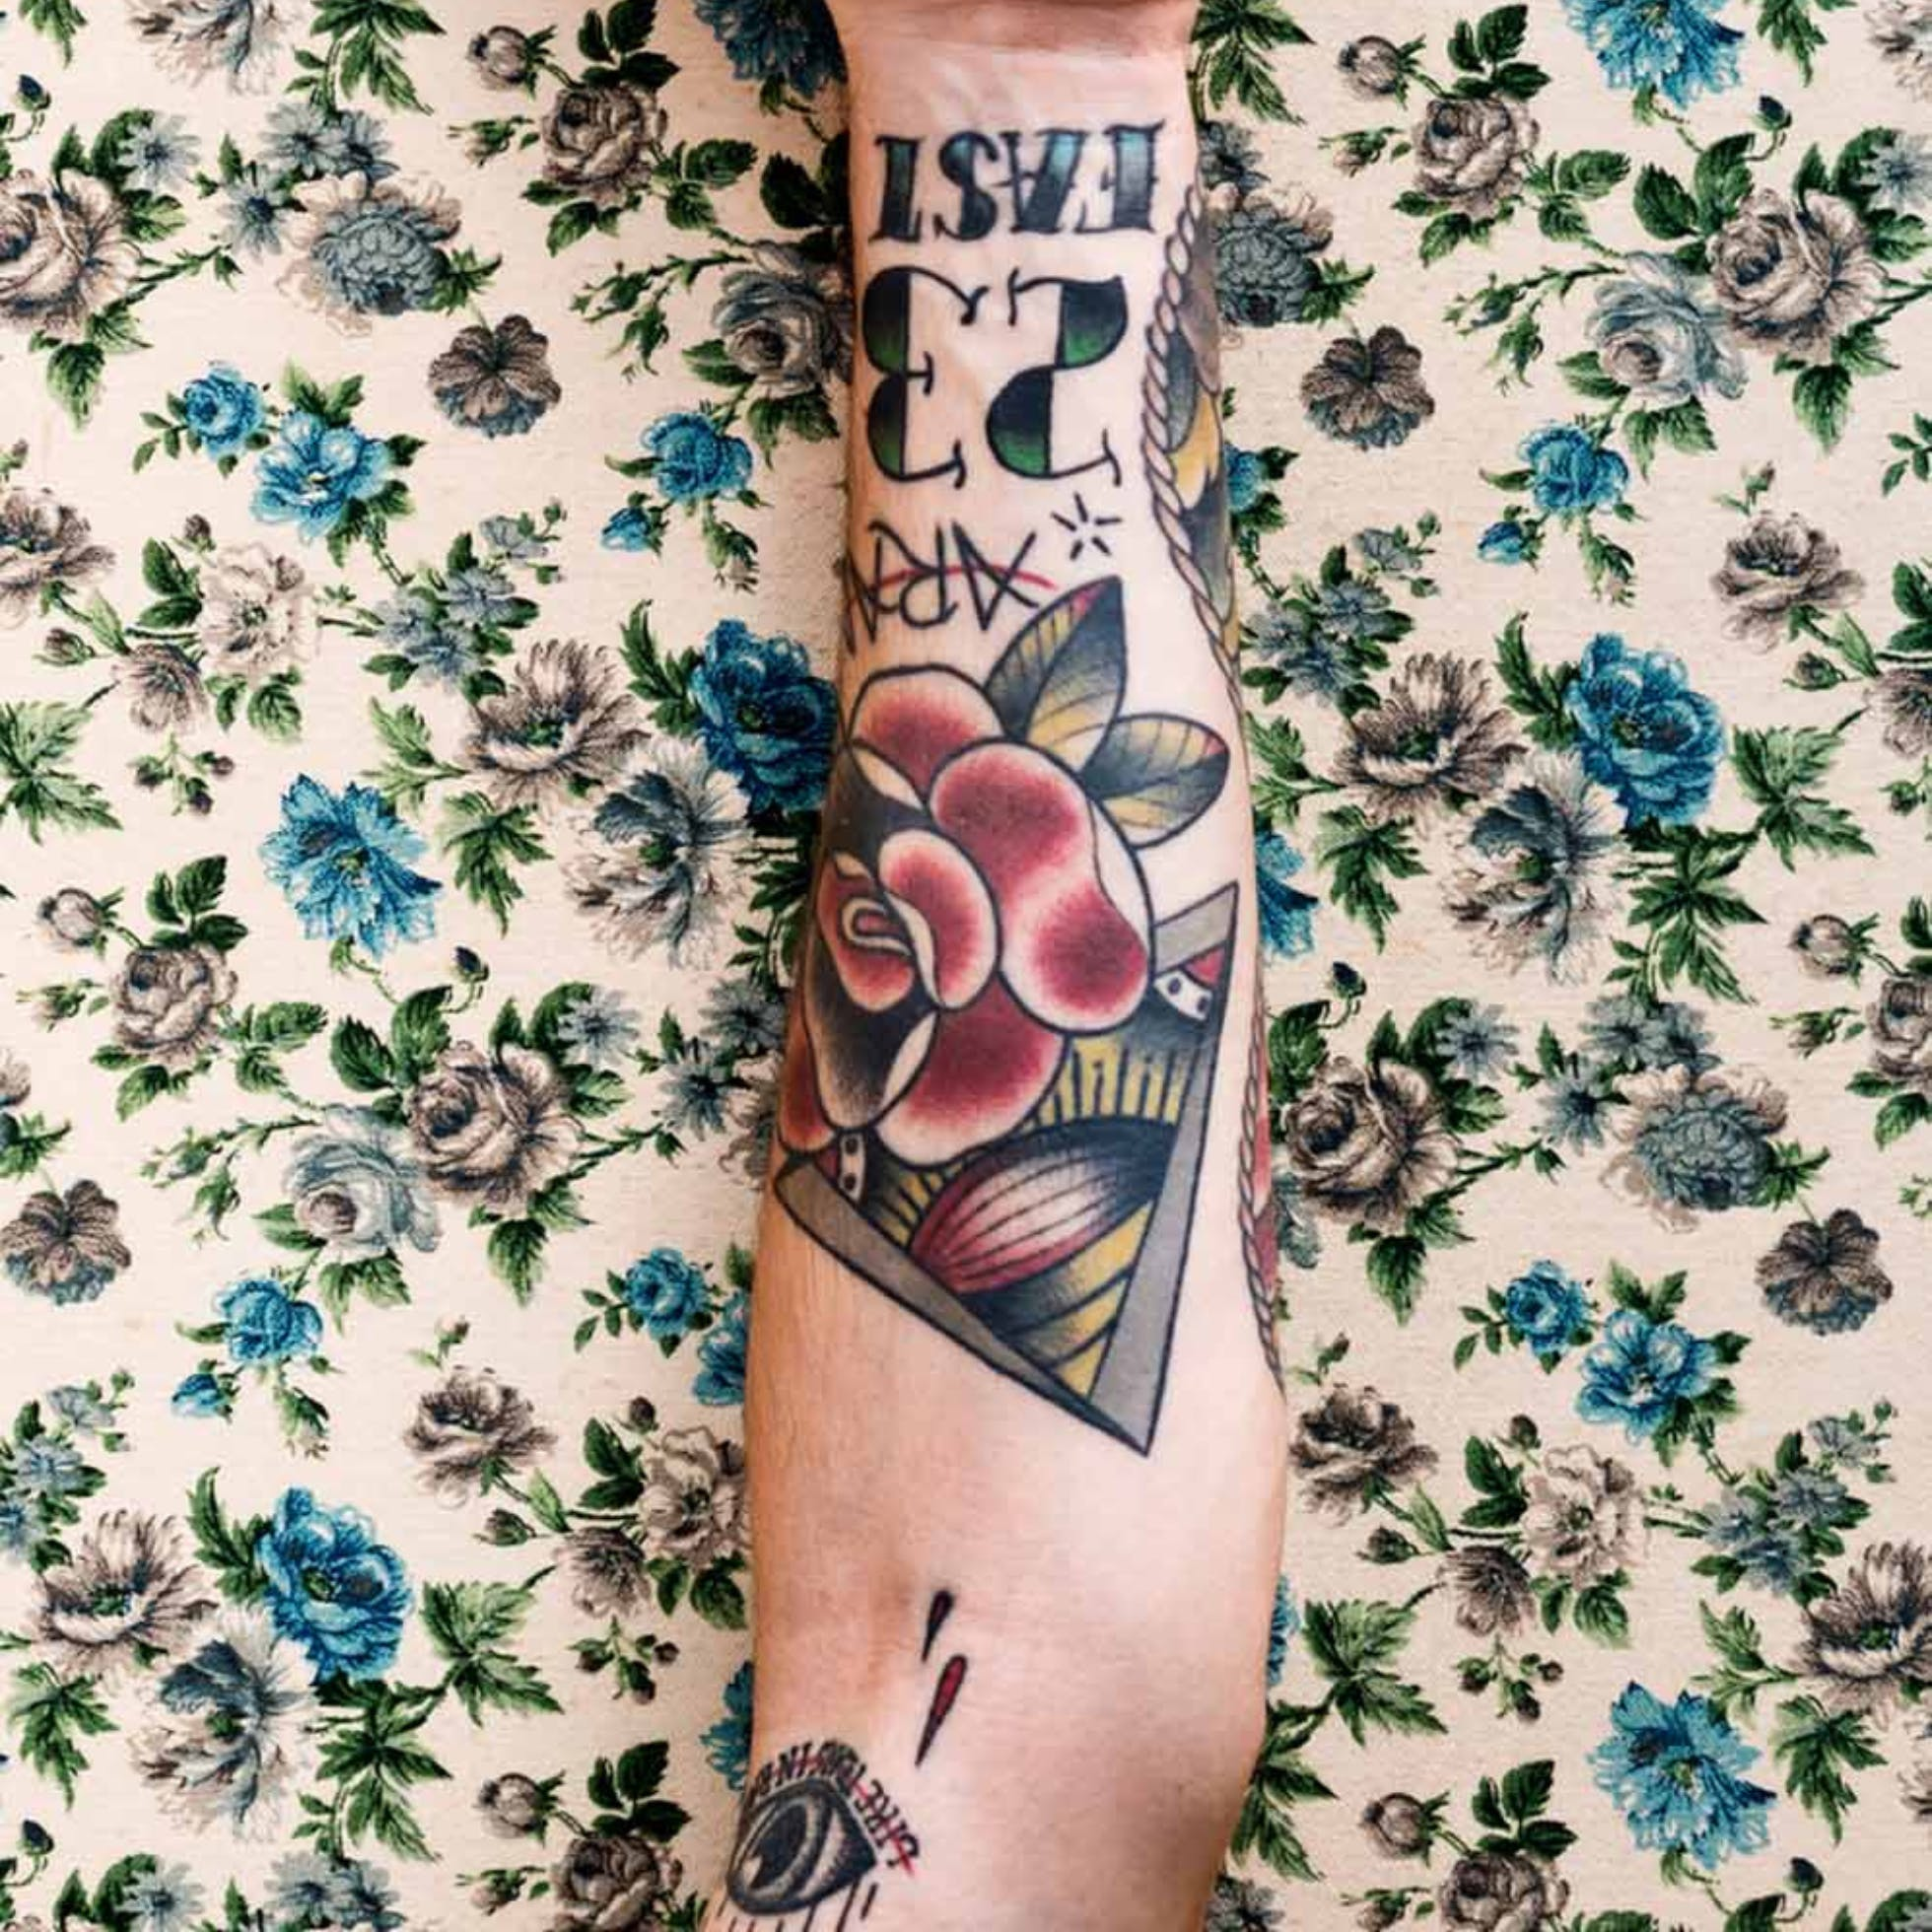 5 Tattoo Shops to Check Out in Downtown Richmond